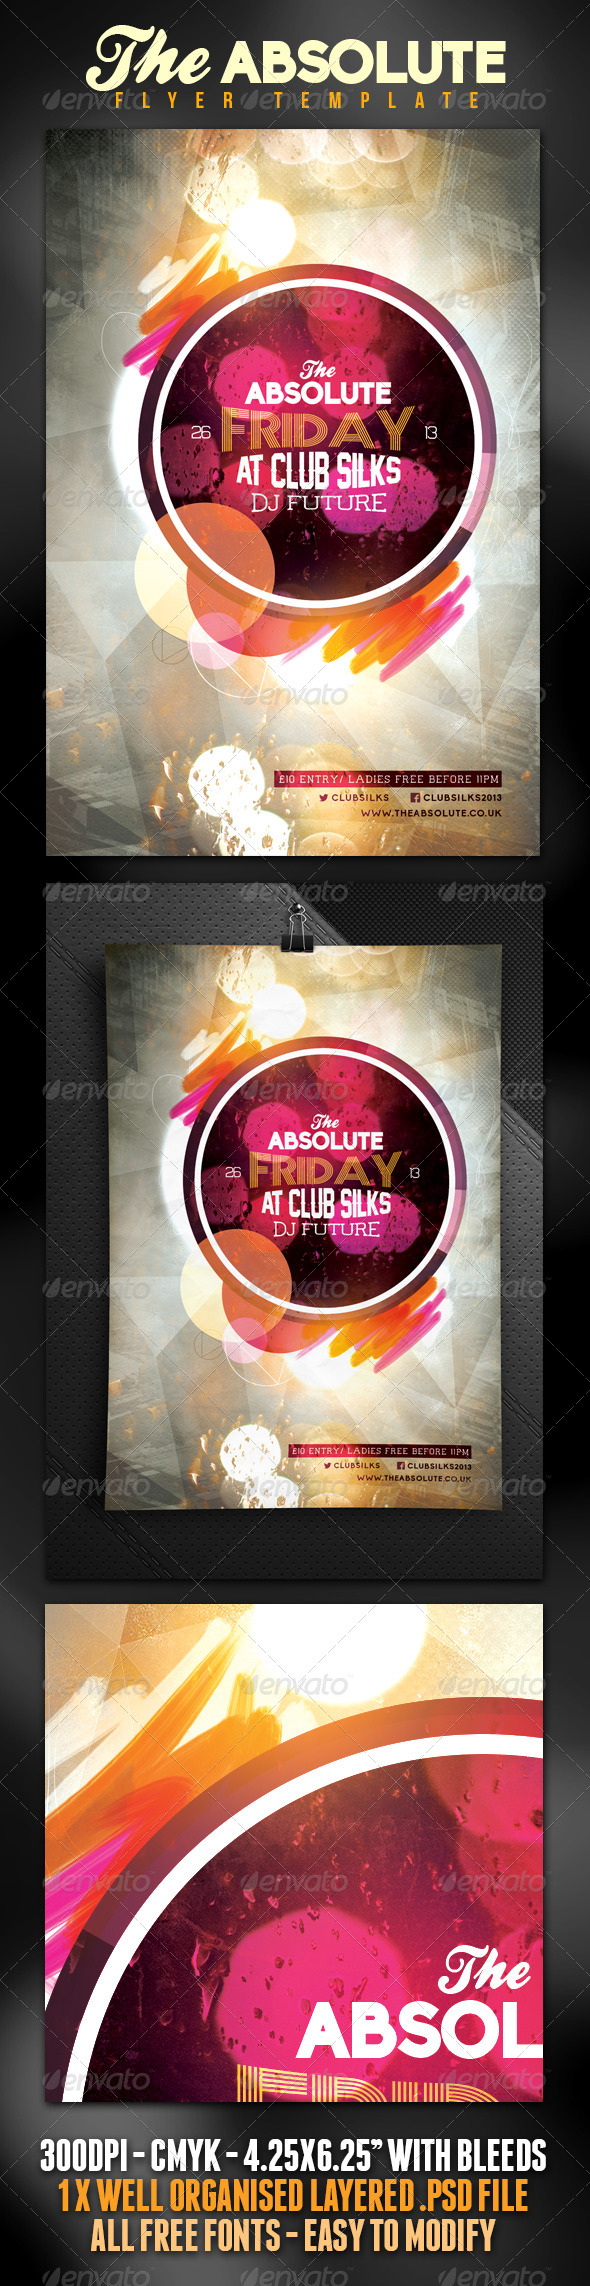 Absolute Nightclub/Party Flyer  - Clubs & Parties Events